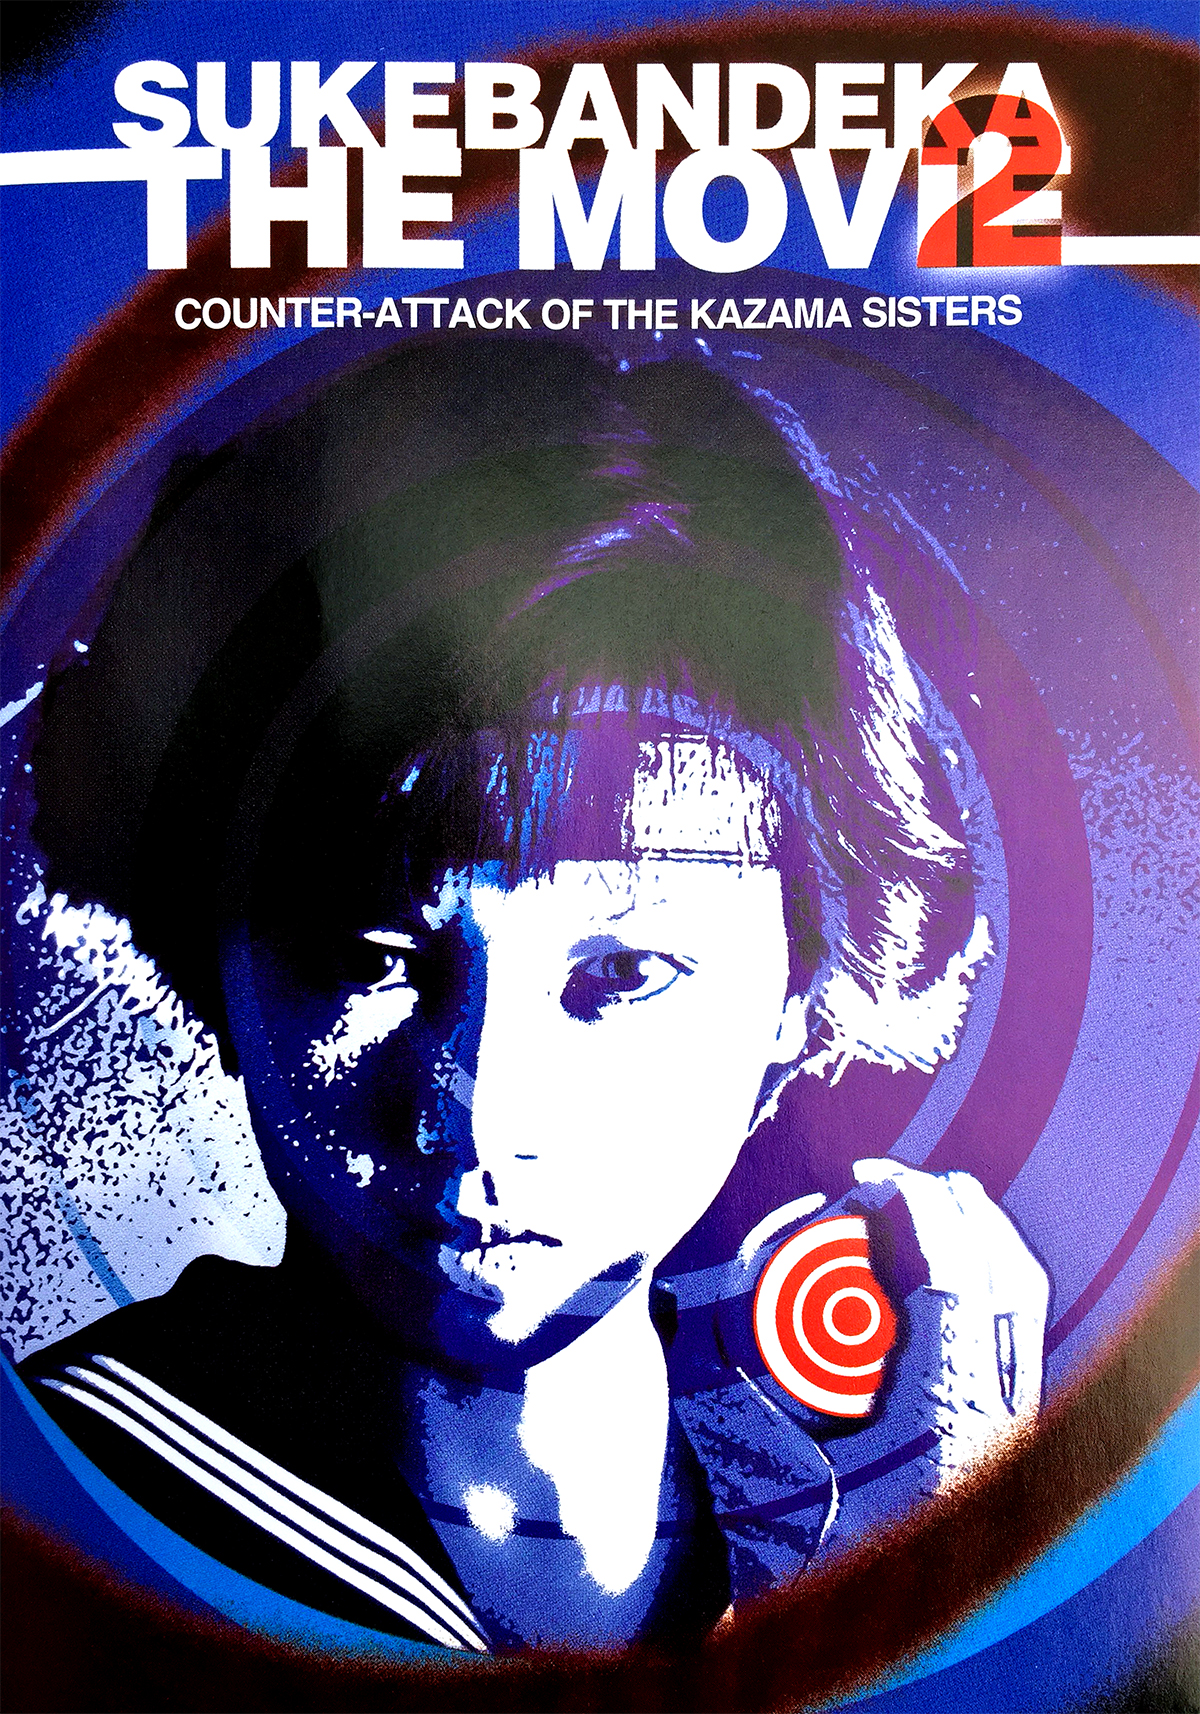 """Sukeban Deka 2: The Kazama Sisters' Counter-Attack""."